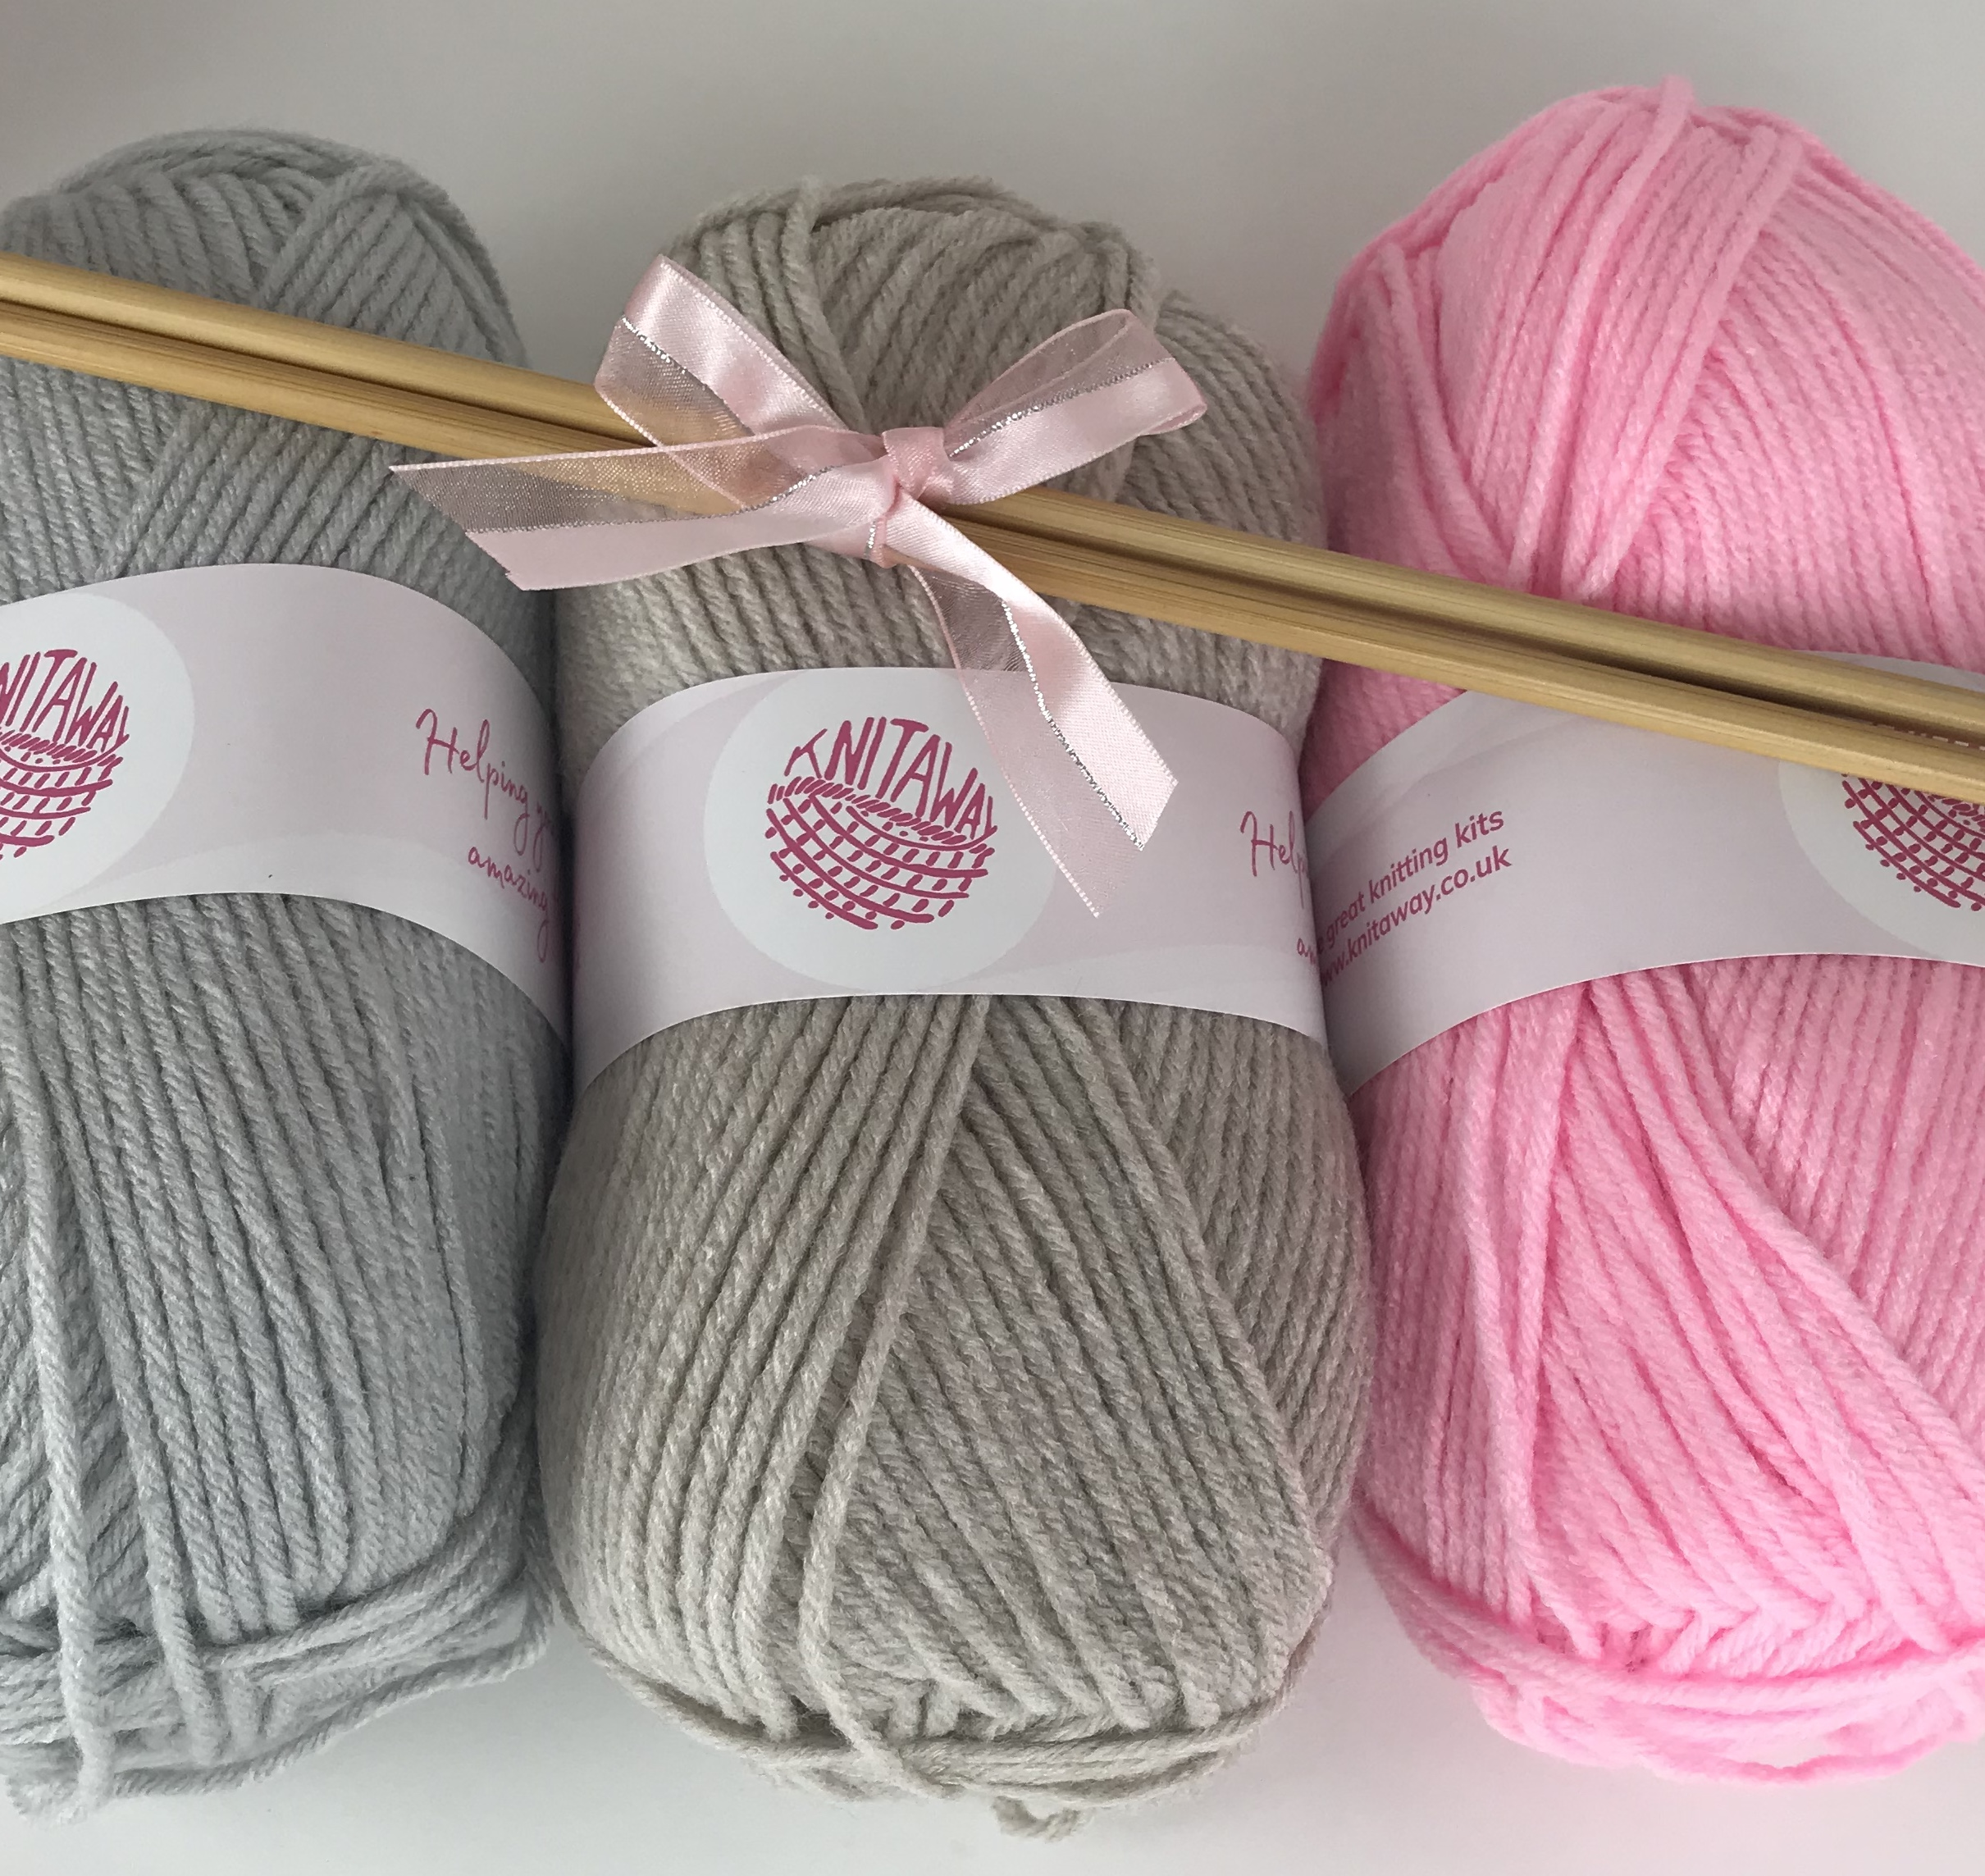 Beginners Knitting Kit easy to learn to knit